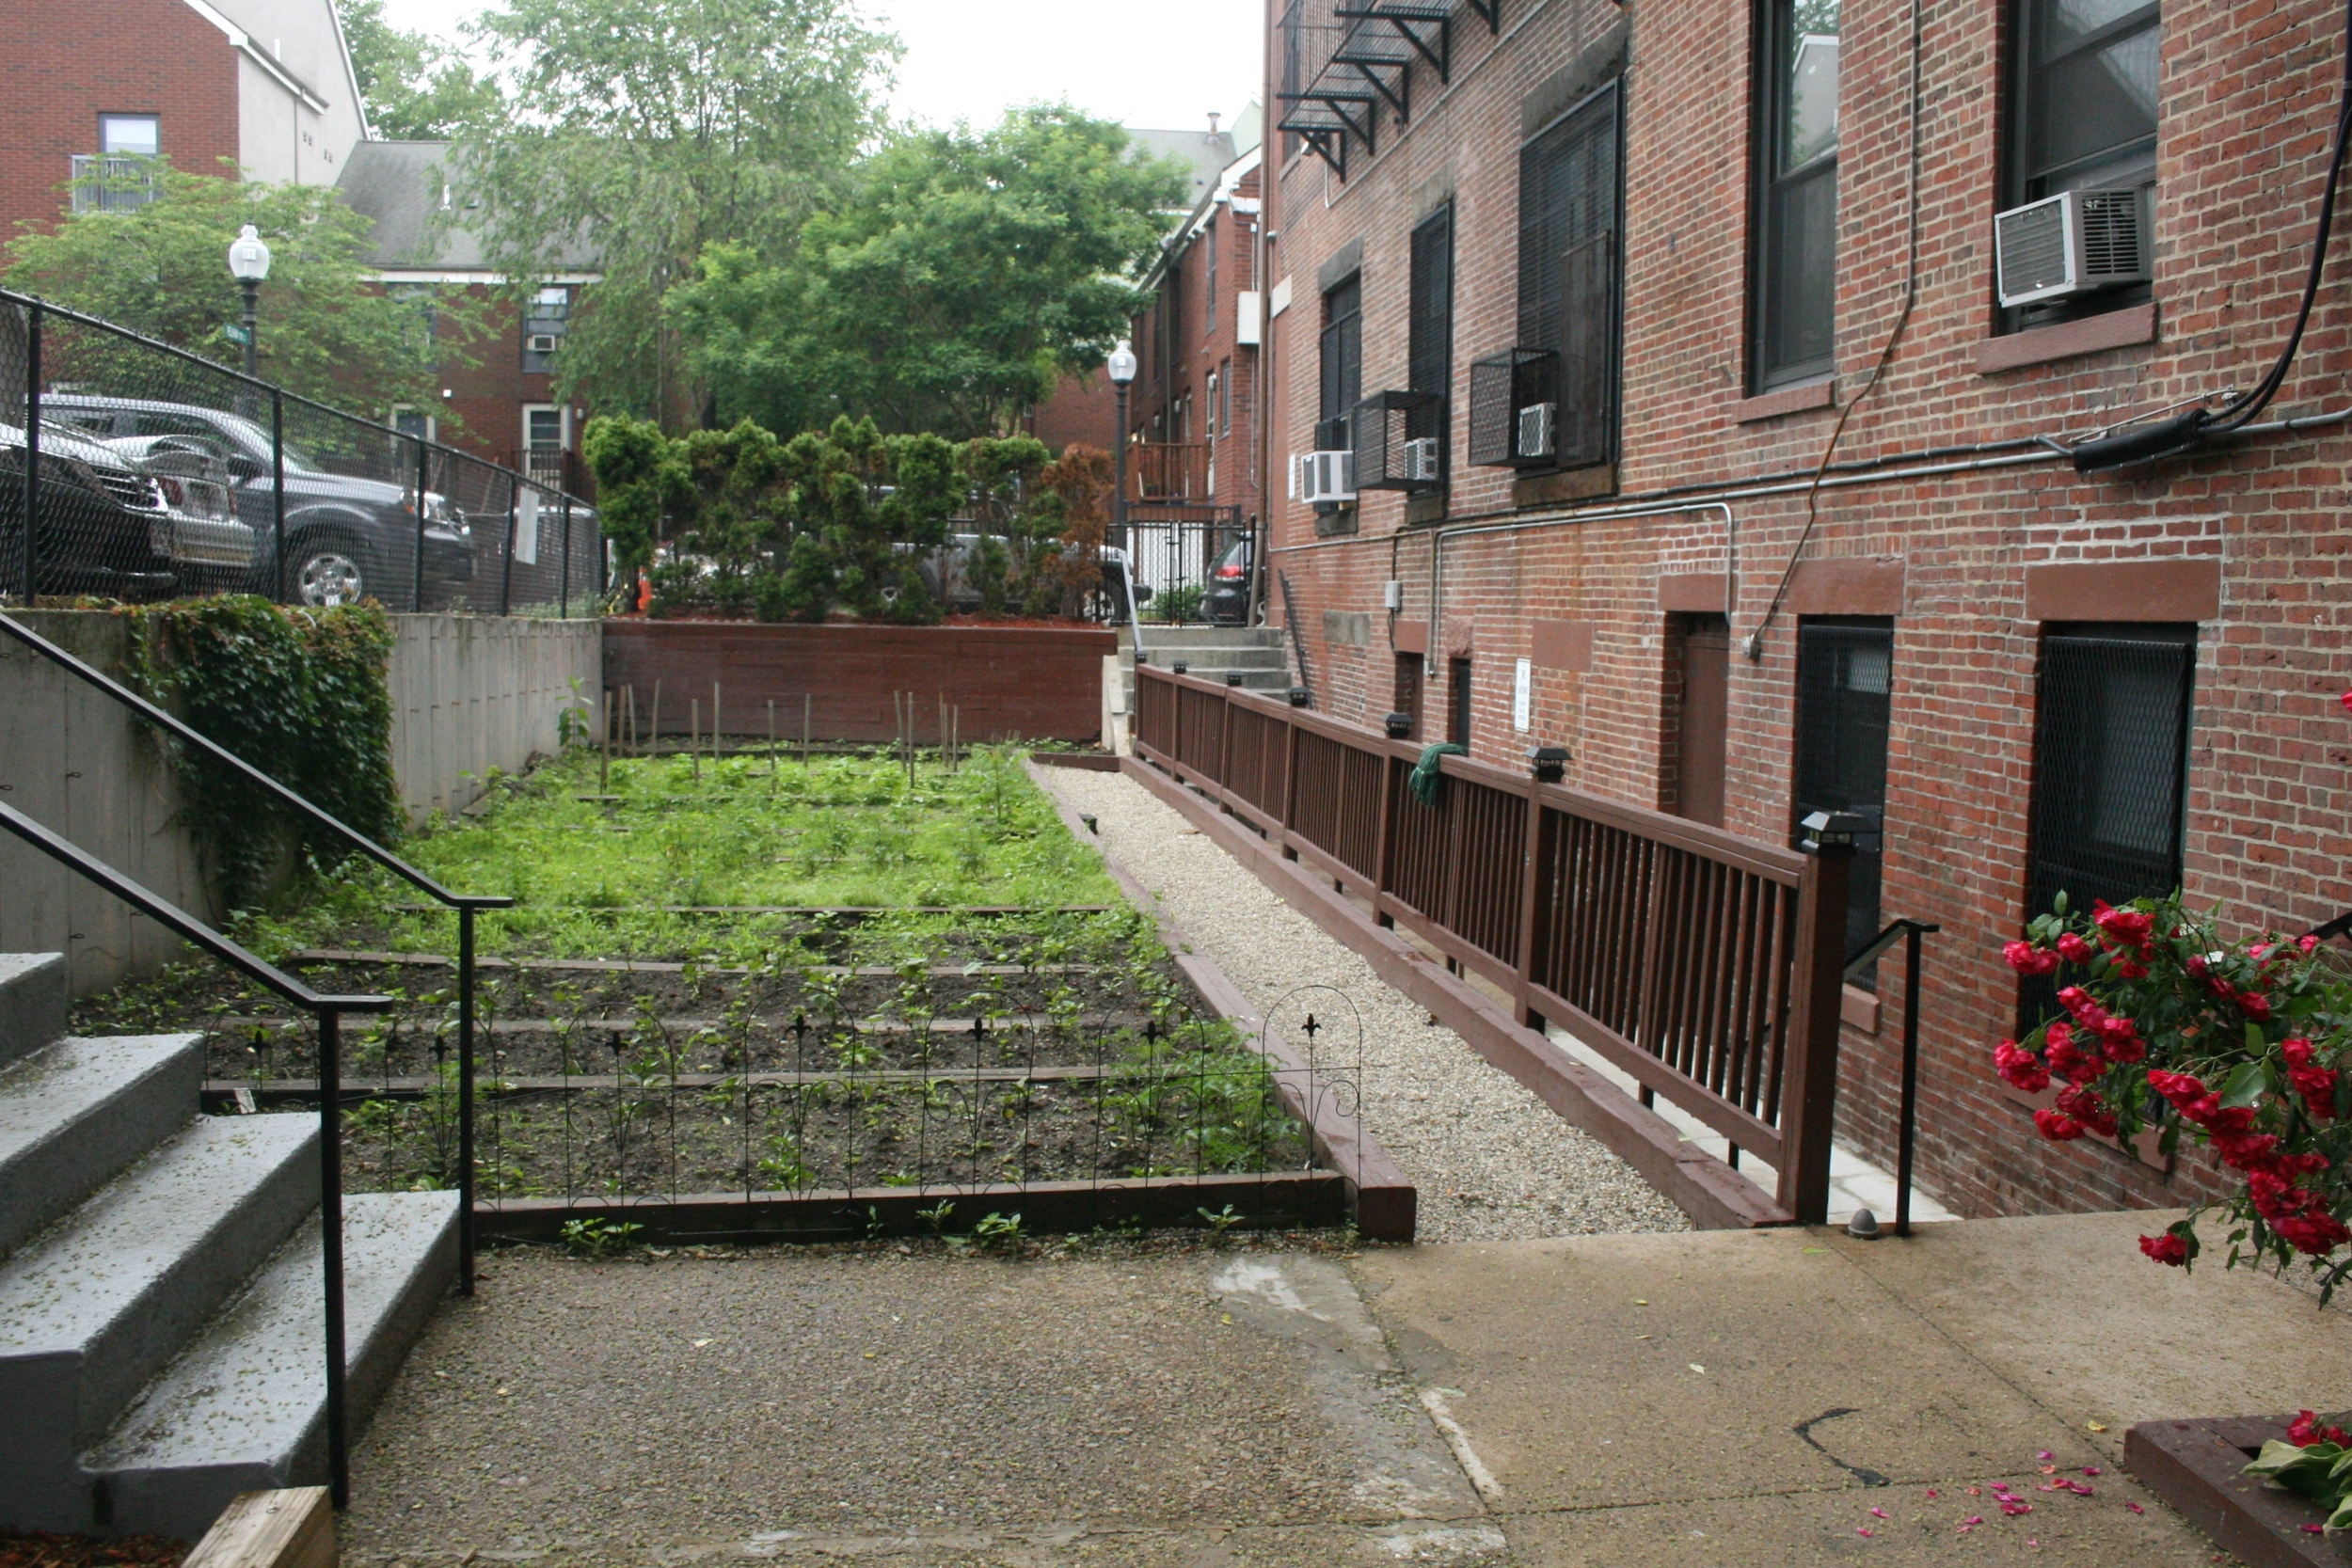 BEFORE - existing yards